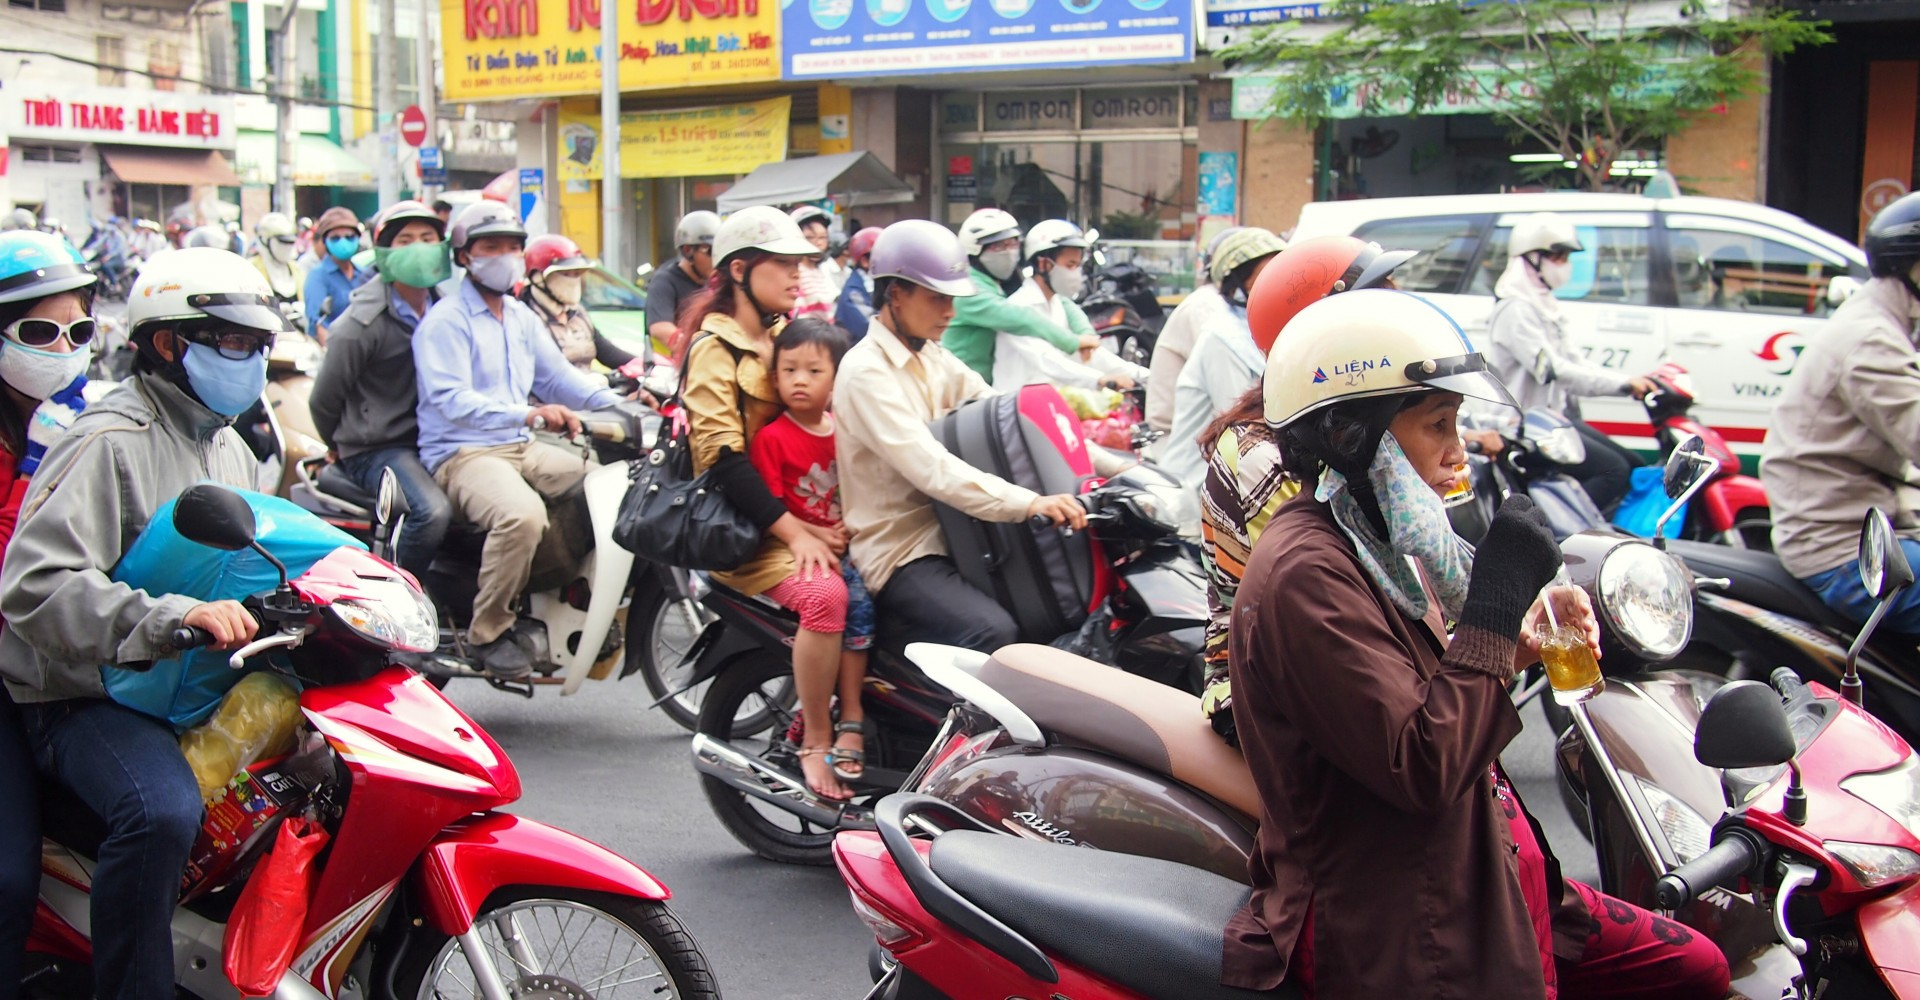 Saigon's Xe Om: Motorcycle Taxi Drivers that Made Me Smile